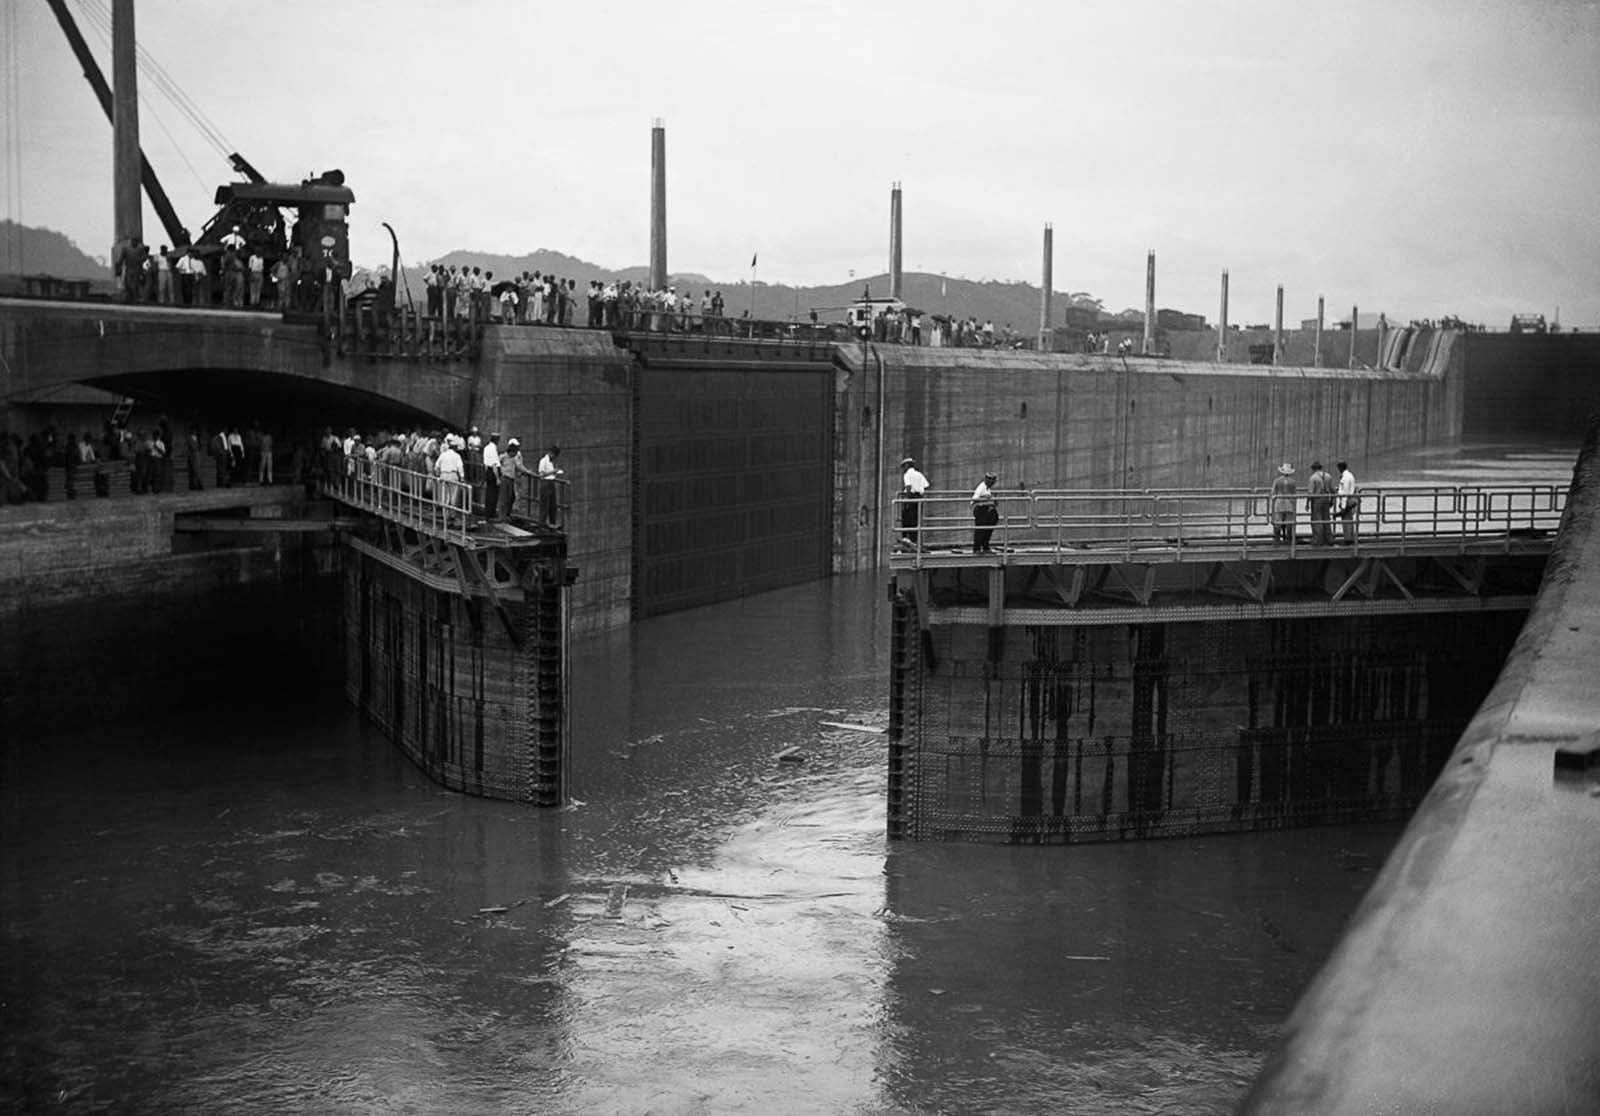 The gates of the Miraflores Locks open for testing. 1913.